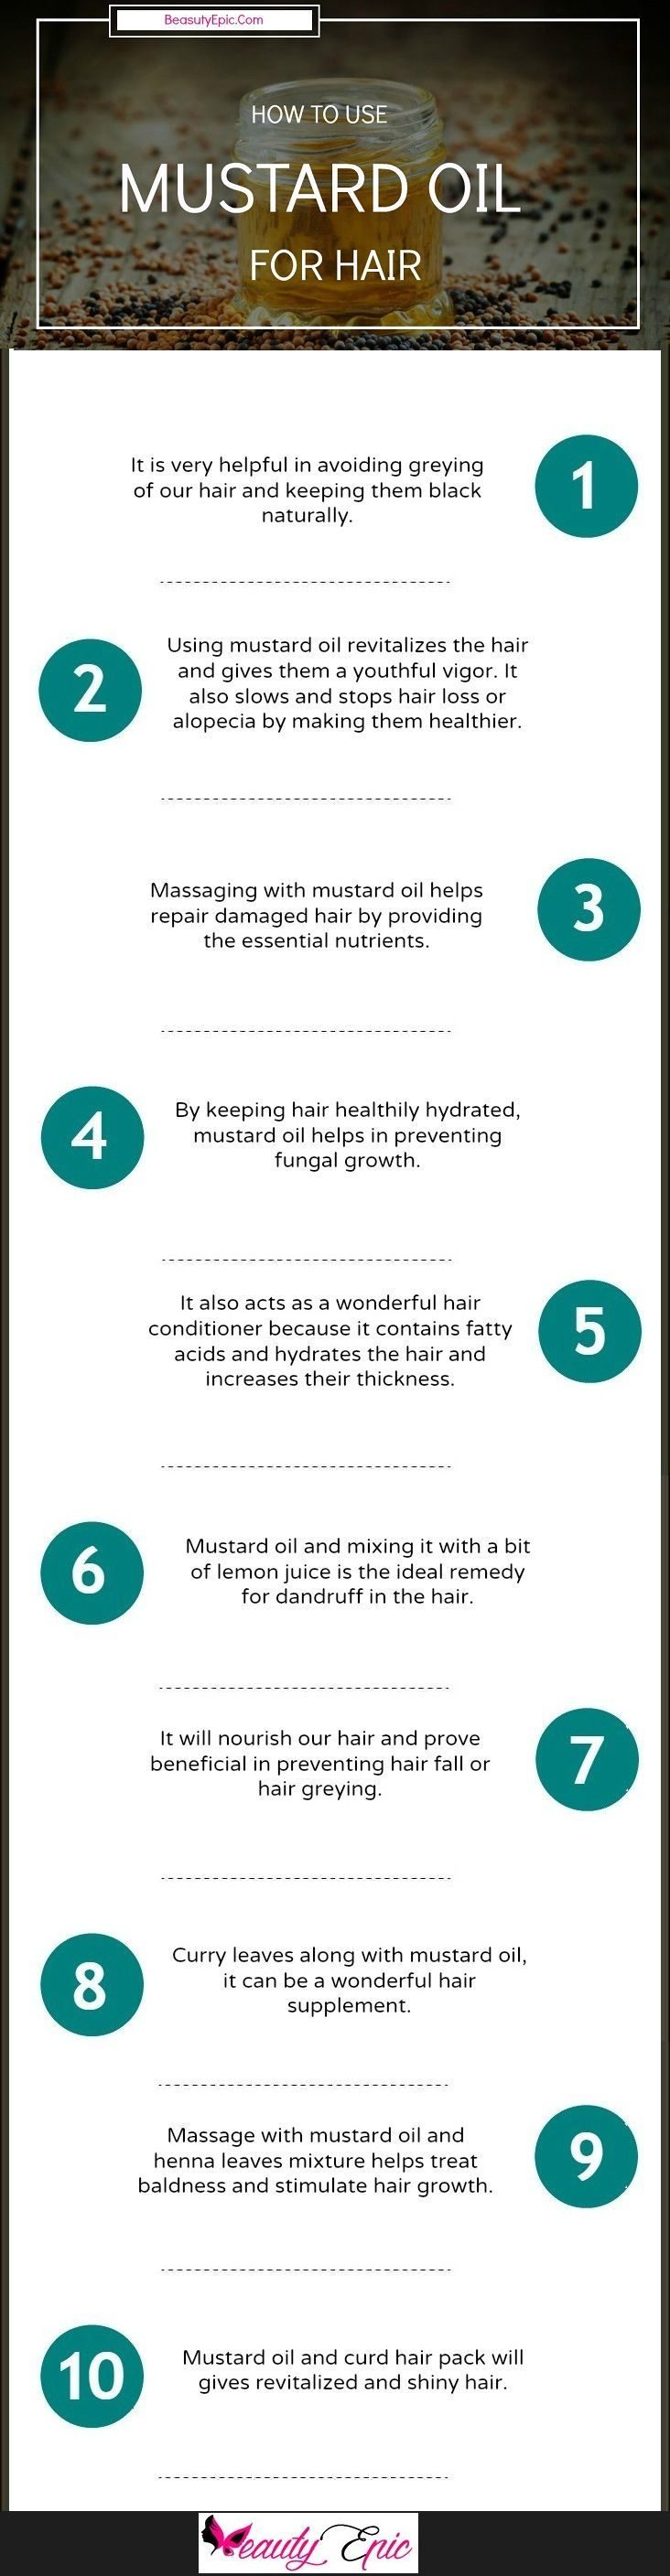 10 Best Ways to Use Mustard Oil for Hair #haircareoil,